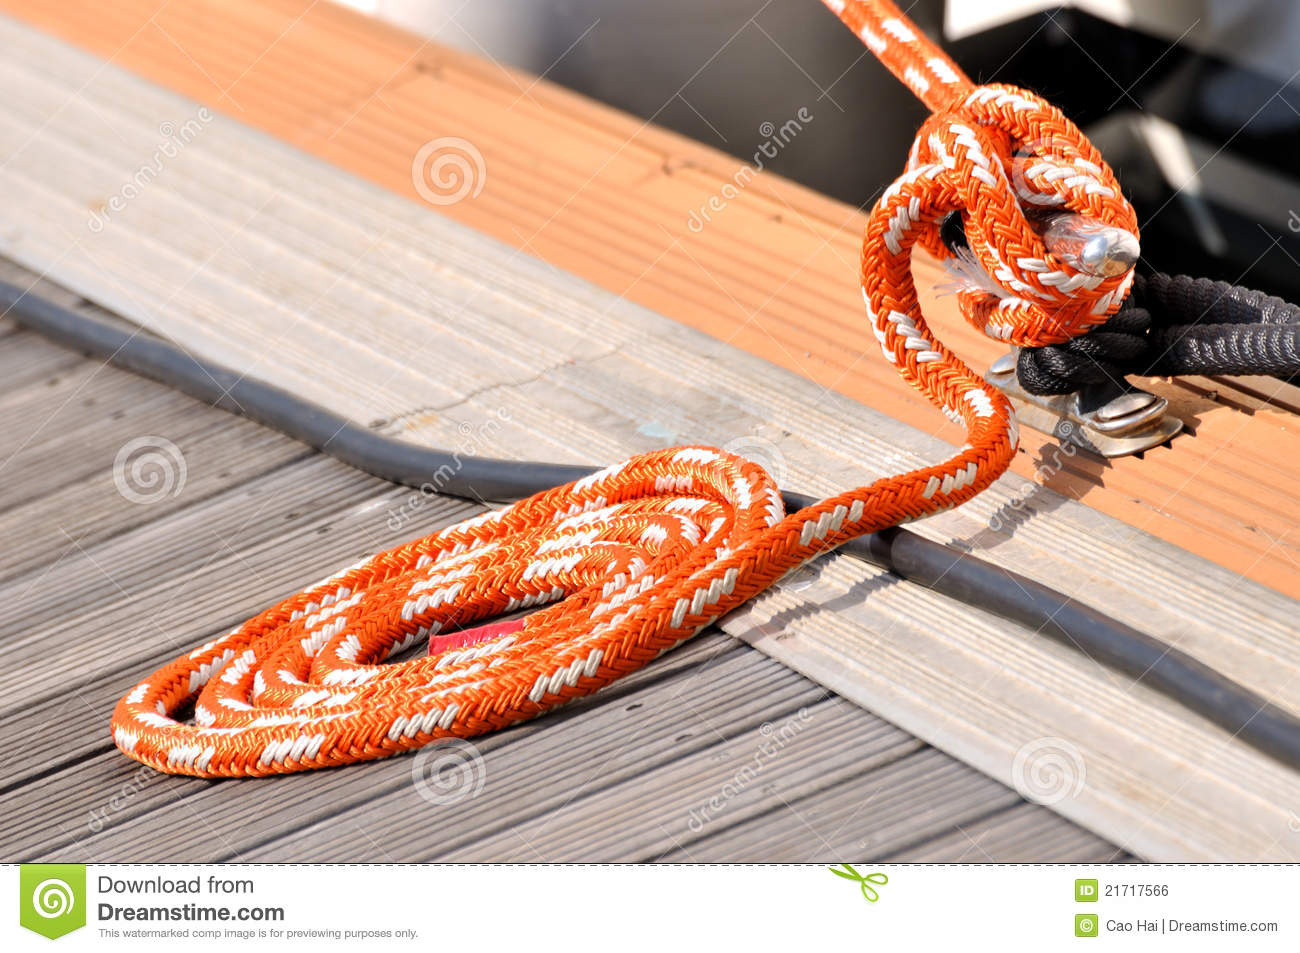 Rope of boat twist into circle on dock